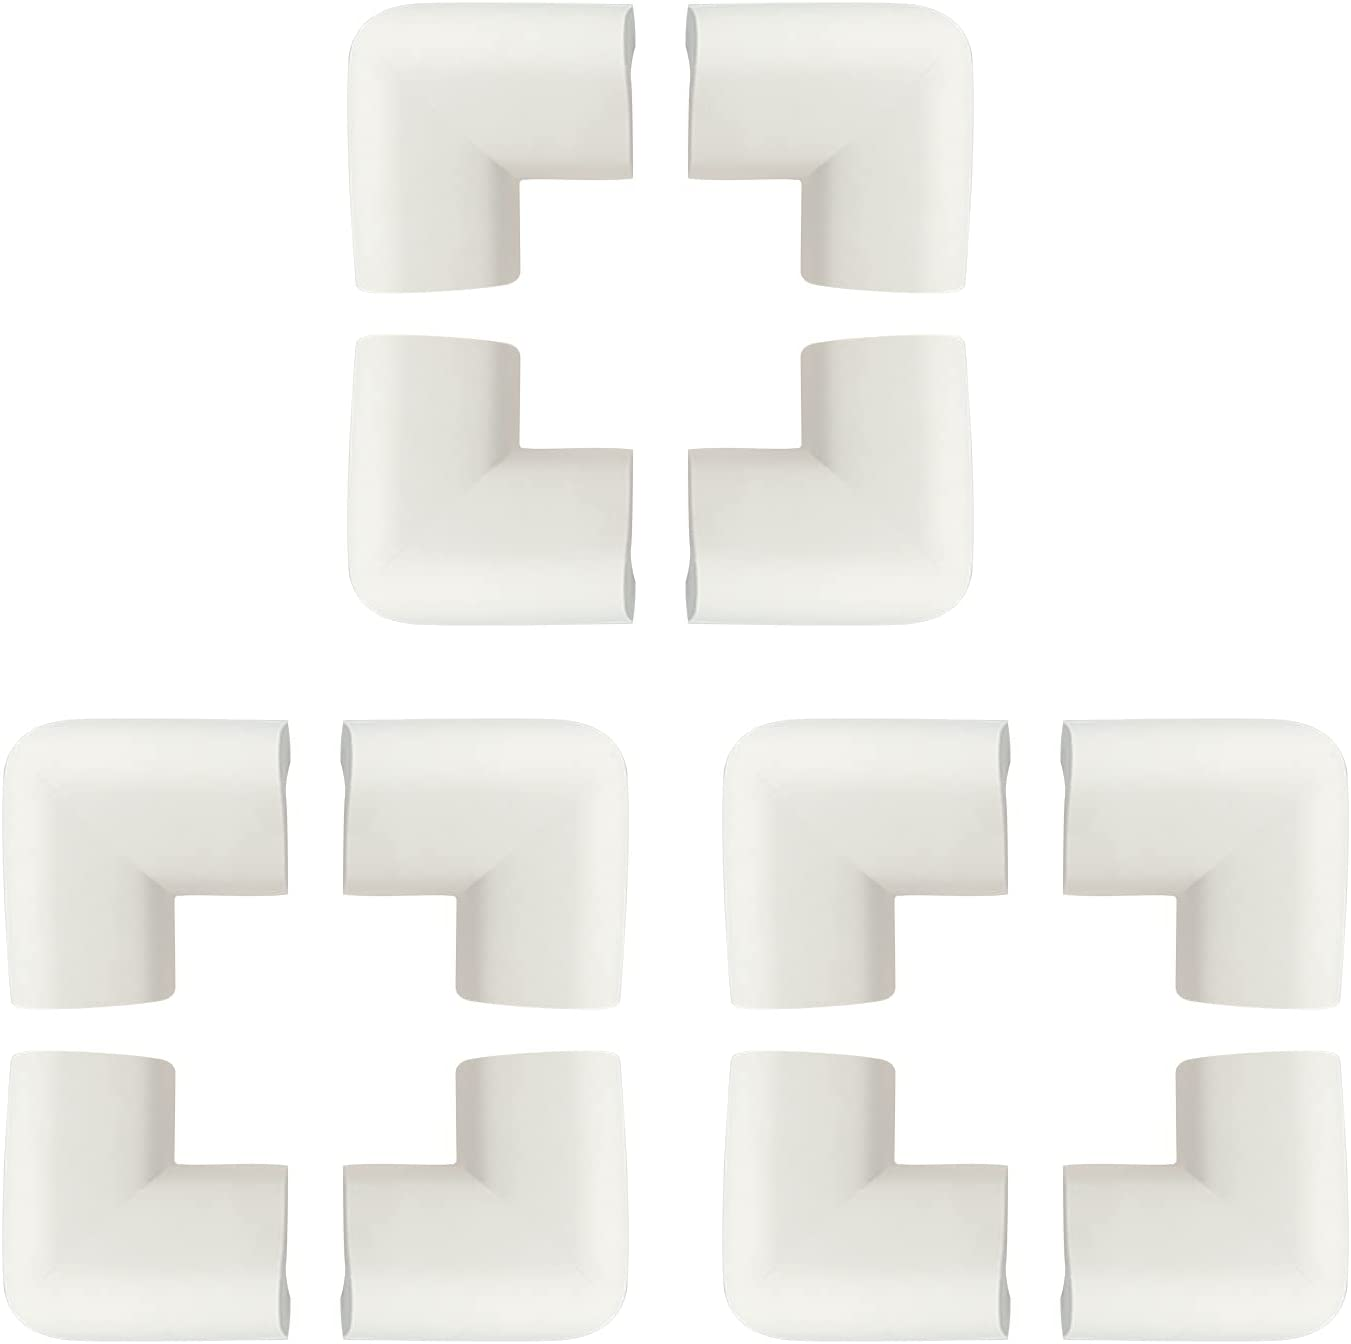 ZUER 12Pcs Baby Proofing Edge Corner,Soft High Resilient Table Bumper Guard,Use for Tea Table,Fireplace,Table Point,Cabinet,Drawer Point,White